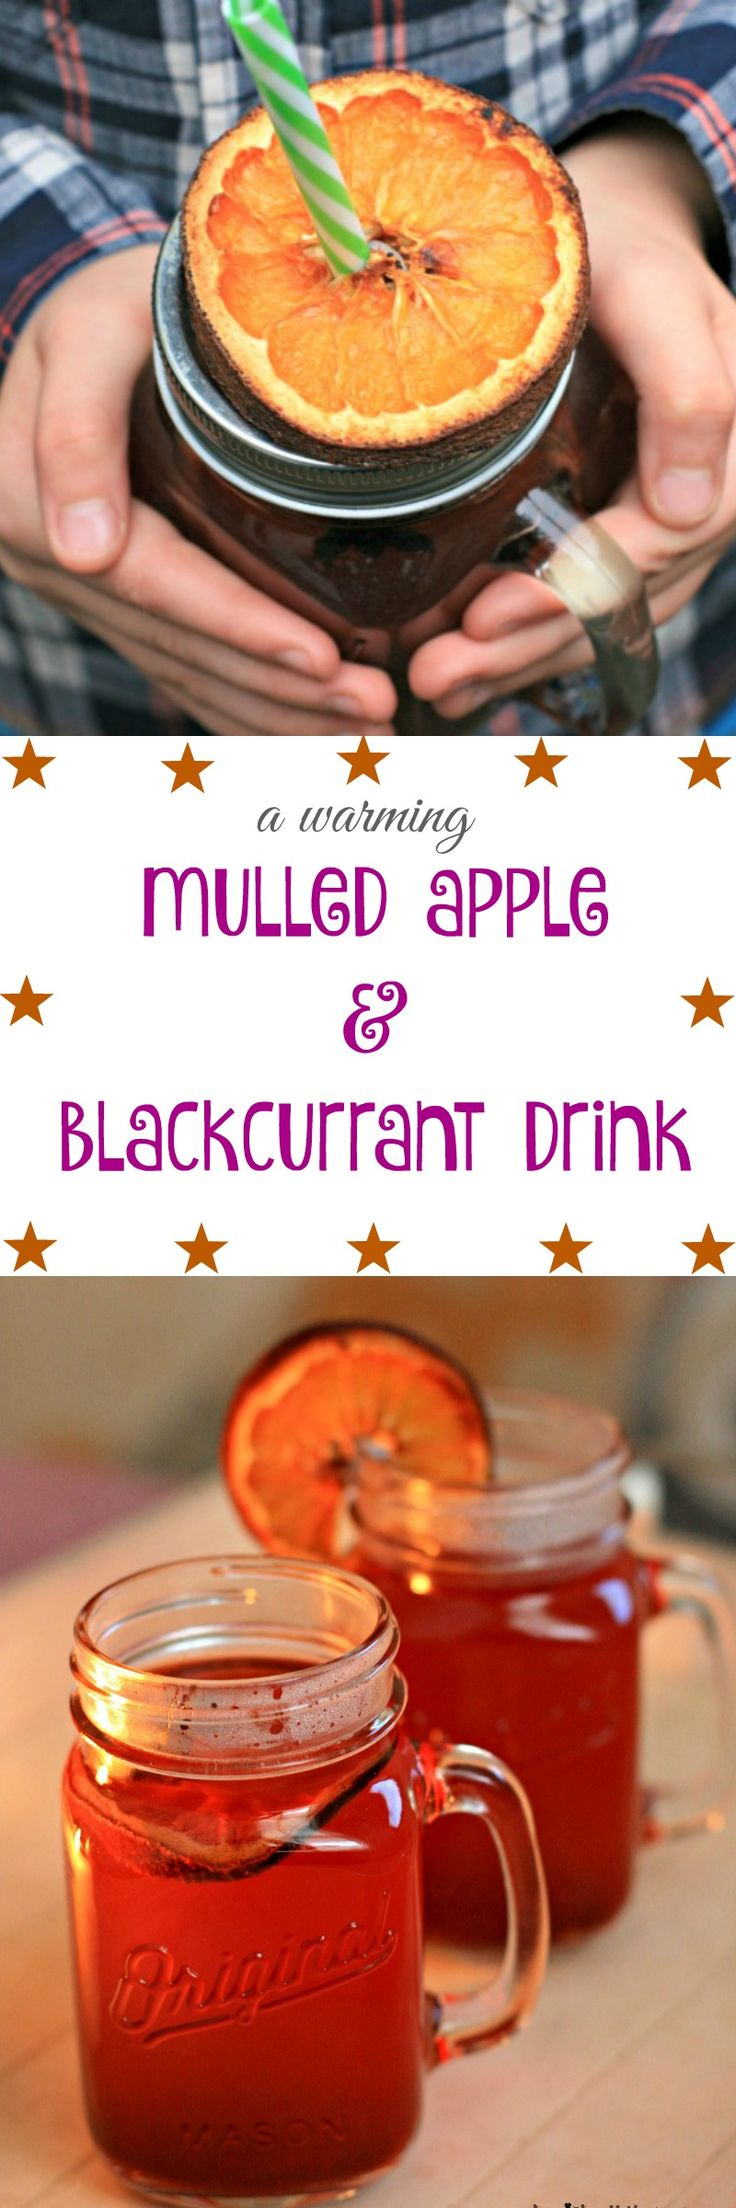 Warm up the whole family with this mulled apple & blackcurrant drink - Cherished By Me